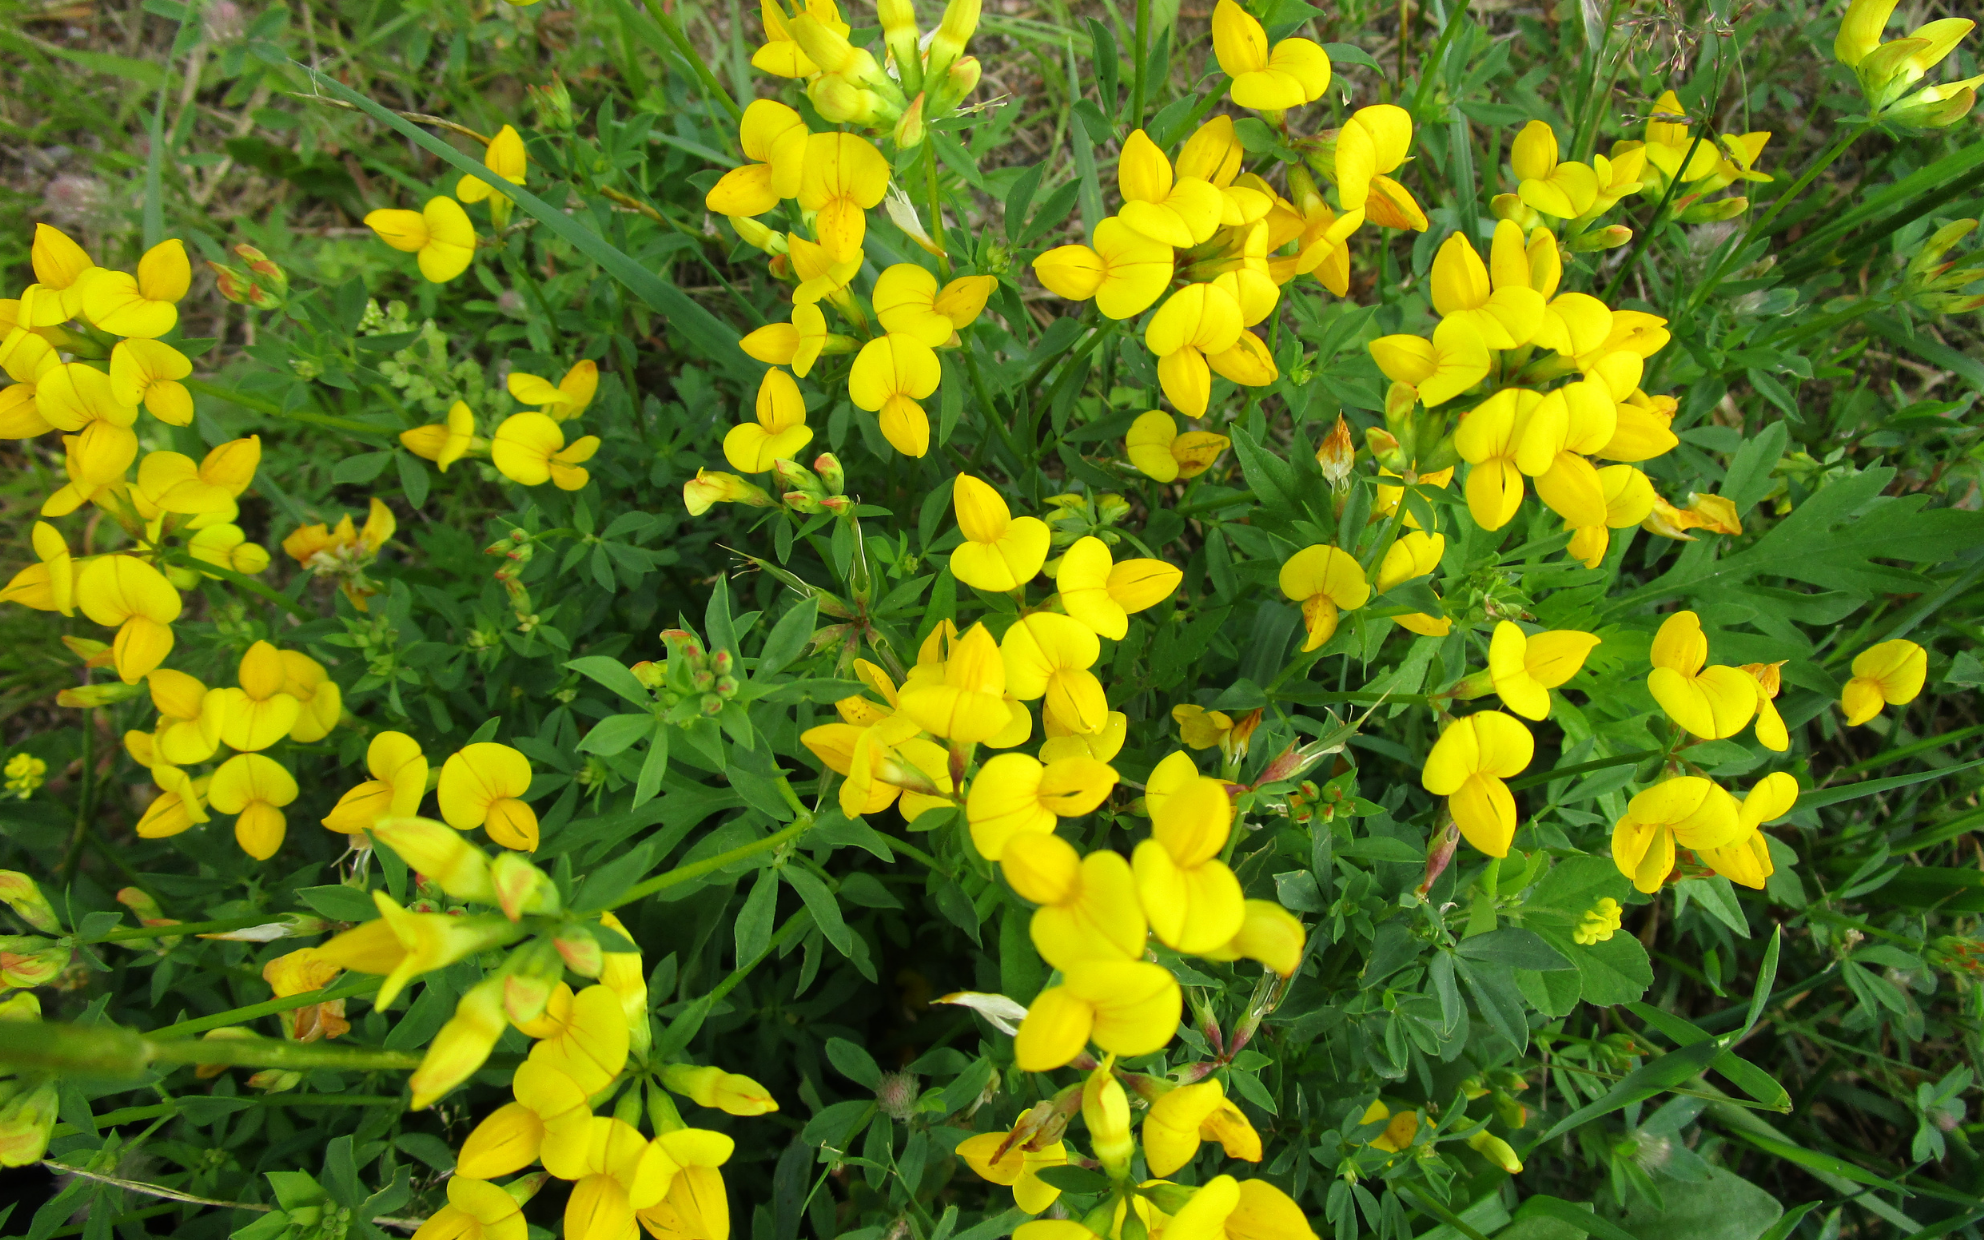 bird's foot trefoil  yellow flowers and leaves, spreading out as ground cover